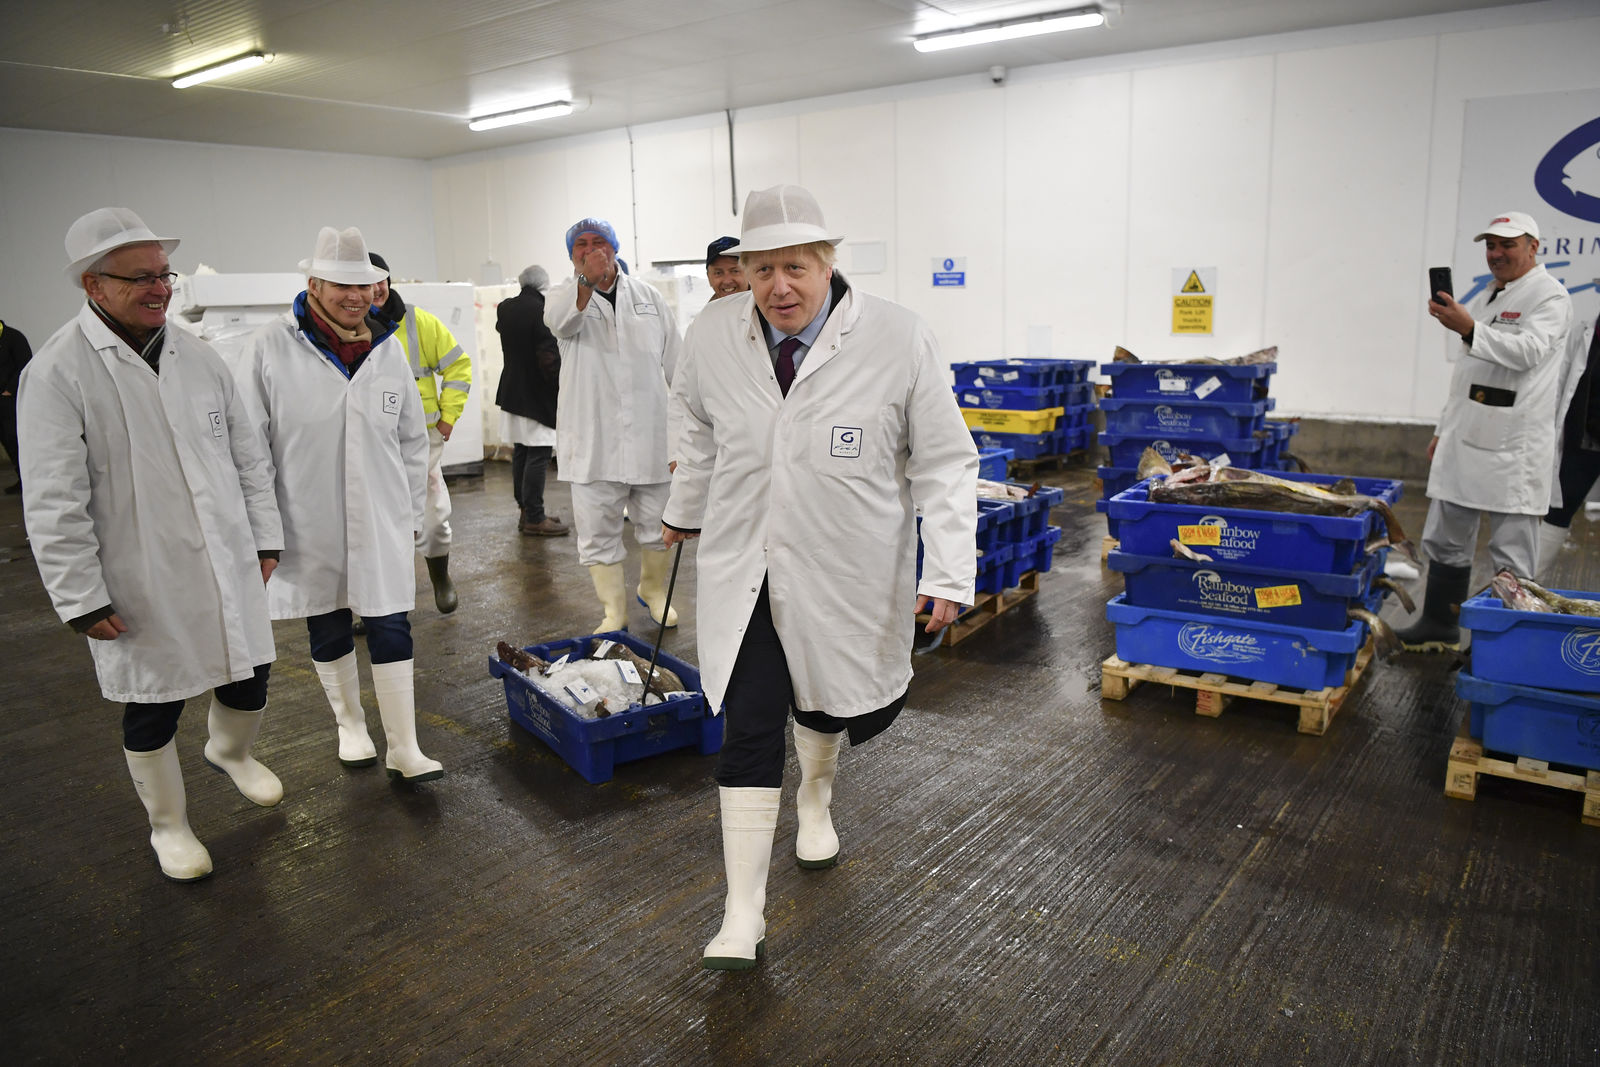 Britain's Prime Minister and Conservative Party leader Boris Johnson, center, visits Grimsby fish market in Grimsby, northeast England, Monday Dec. 9, 2019, ahead of the general election on Dec. 12.{ } (Ben Stansall/Pool via AP)